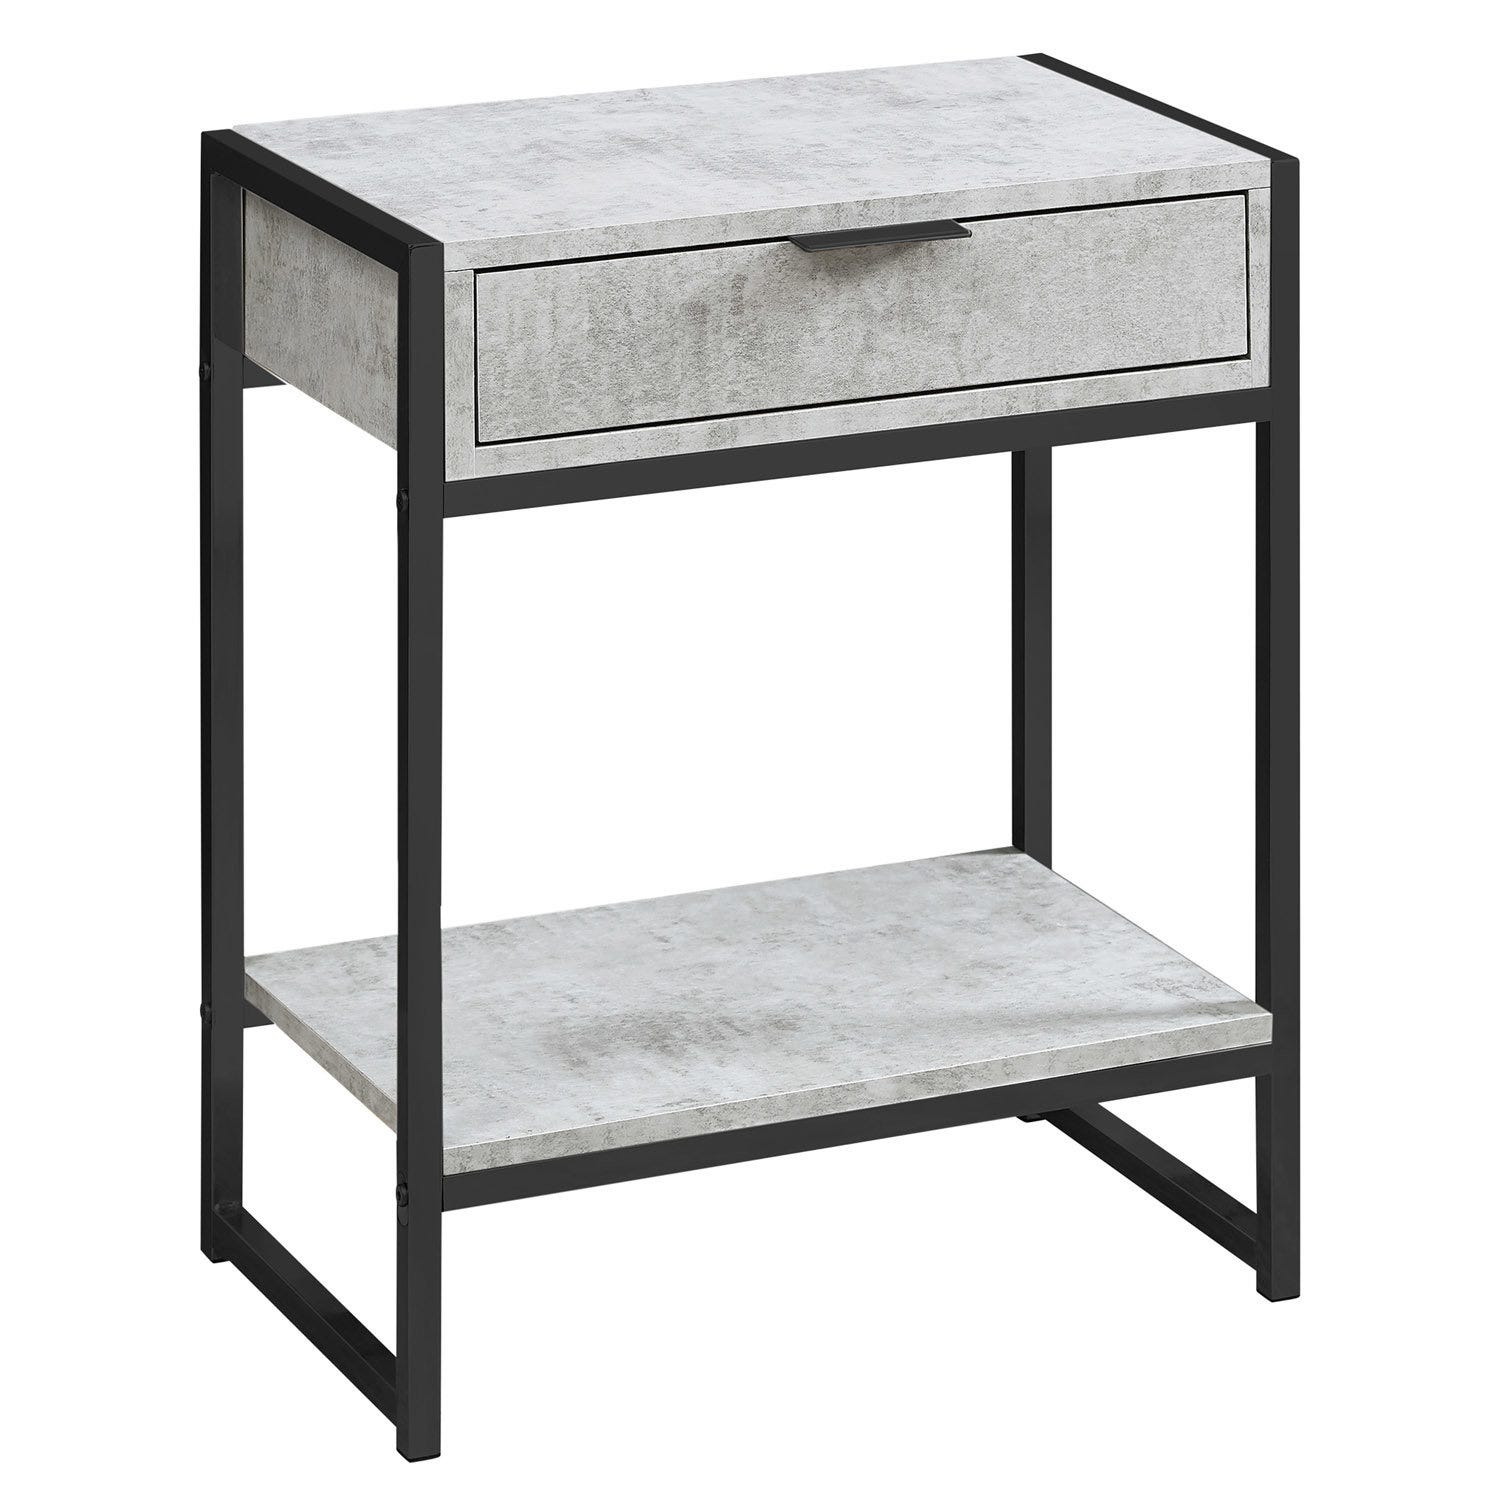 Accent Table 24 H Grey Cement Black Nickel Metal